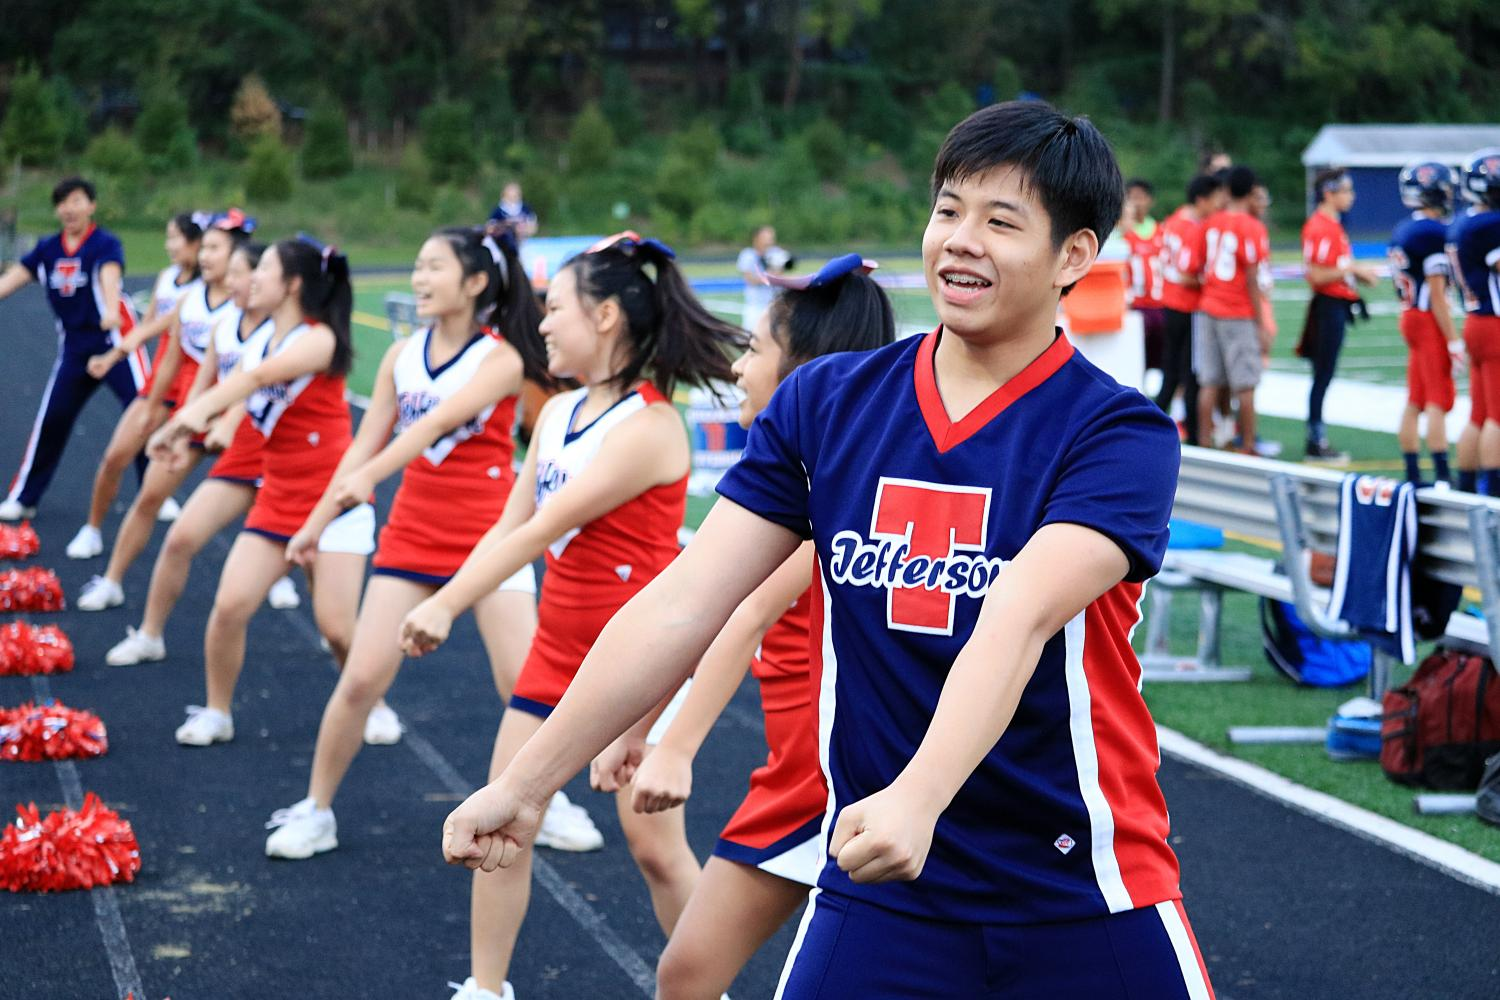 Cheerleader and junior Shawin Vitsupakorn performs cheers in front of the Jefferson crowd alongside other cheerleaders.